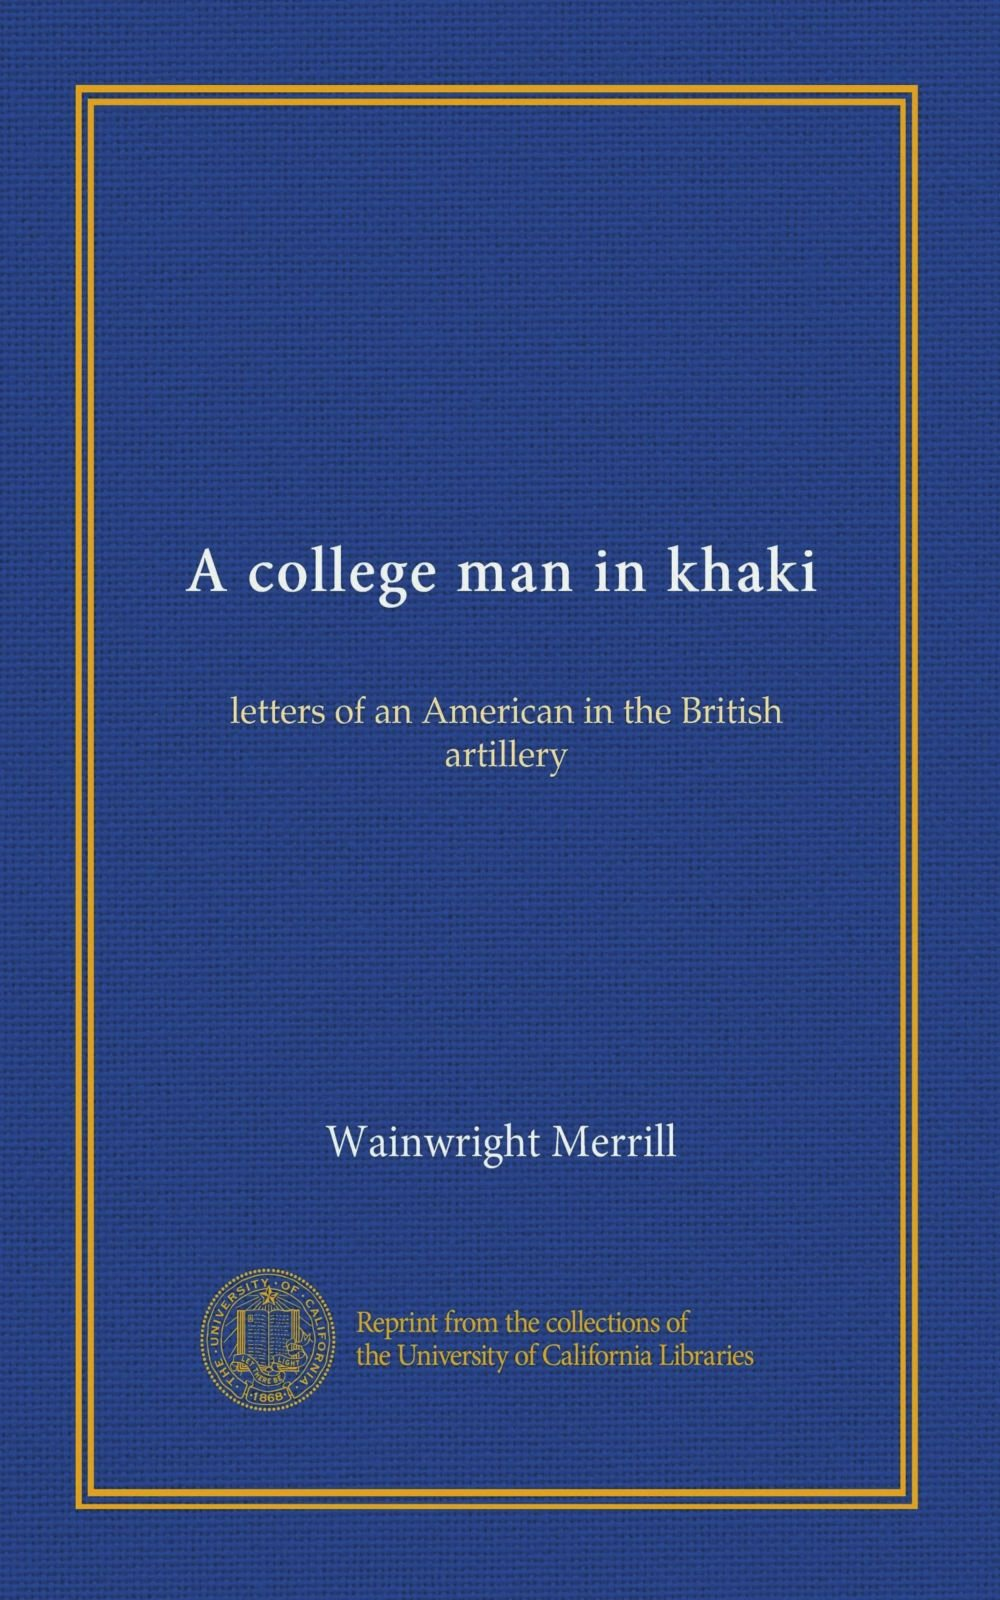 Download A college man in khaki: letters of an American in the British artillery pdf epub